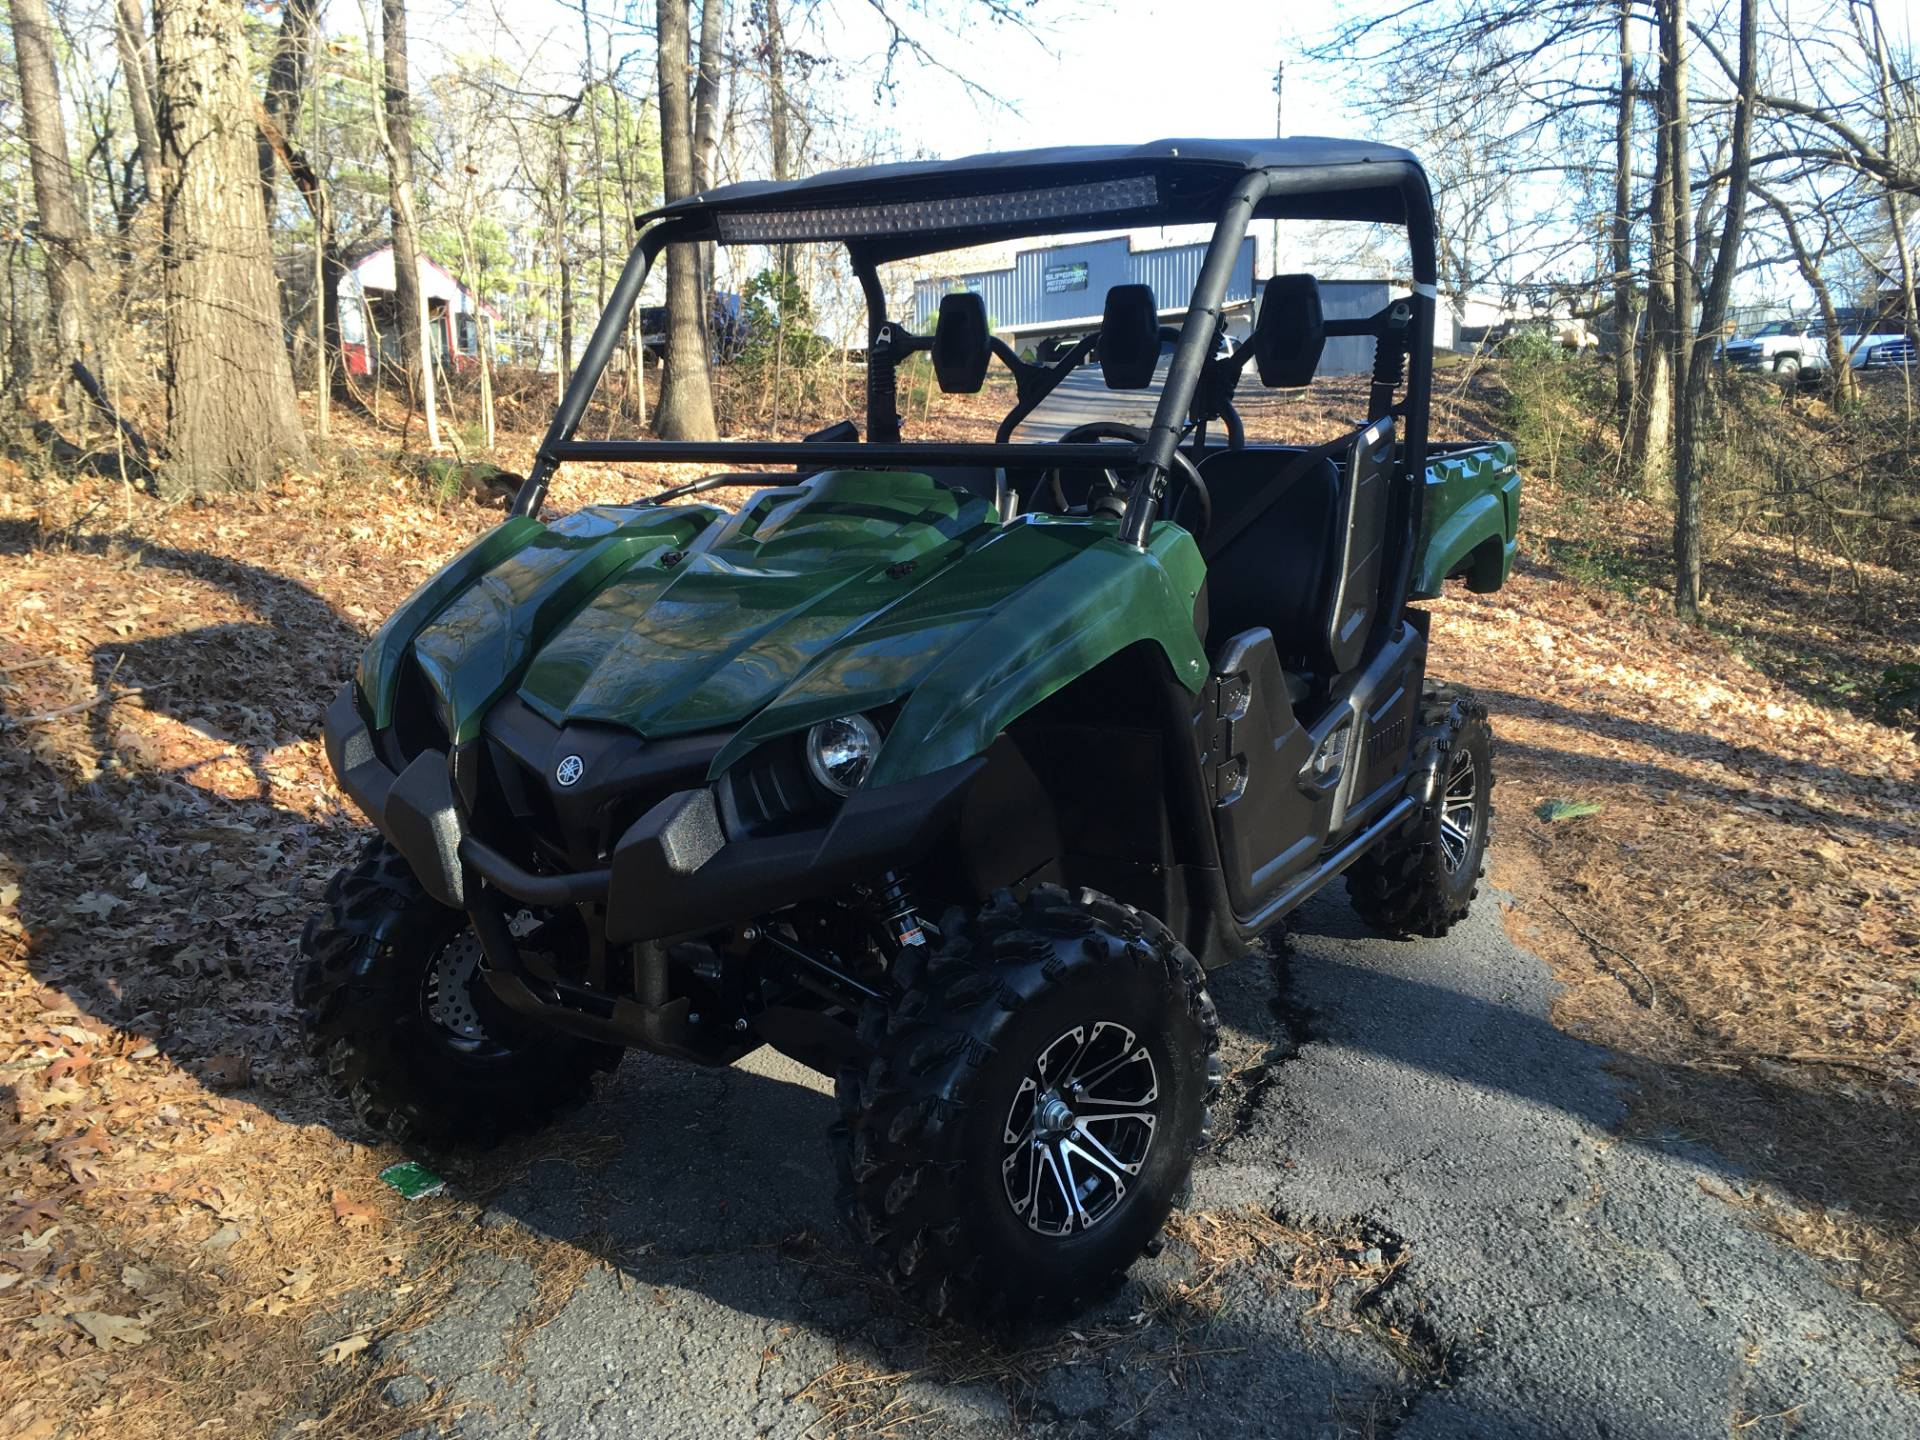 2018 YAMAHA VIKING SUNTOP in Woodstock, Georgia - Photo 1